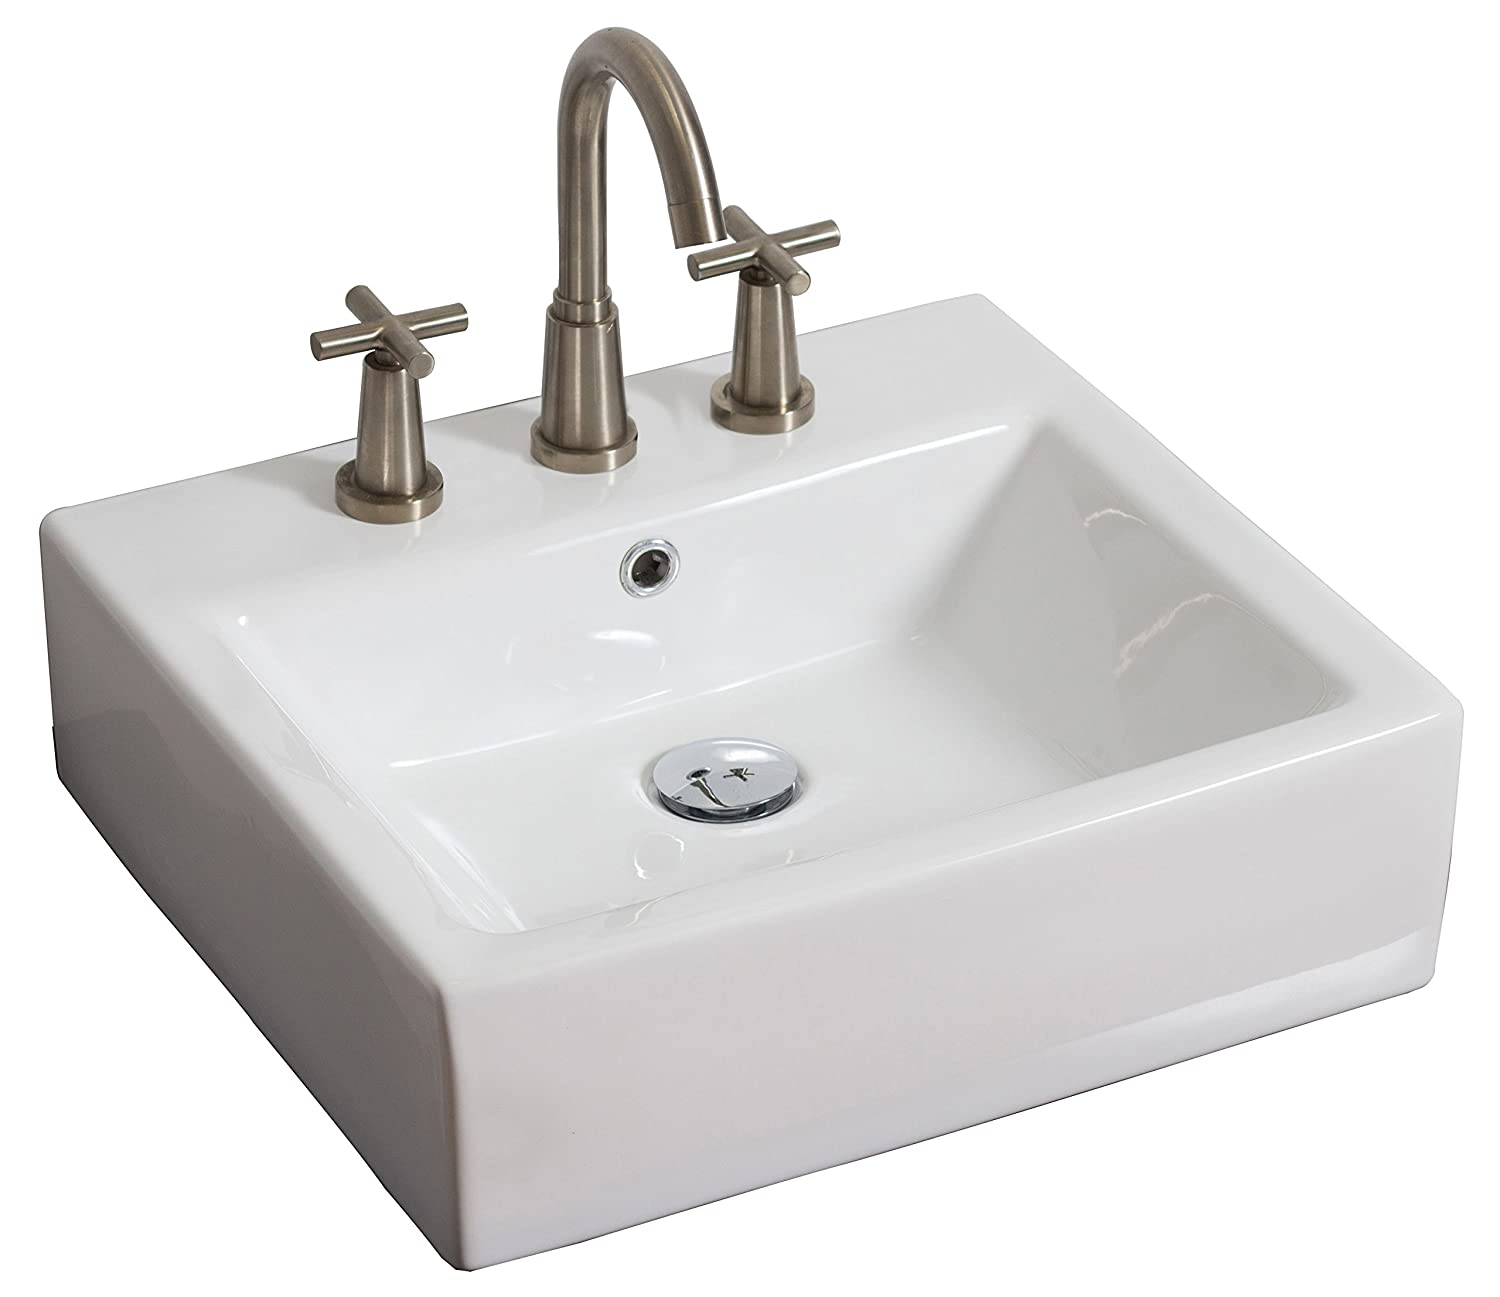 American Imaginations AI-12-439 Above Counter Rectangle Vessel for 8-Inch OC Faucet, 20-Inch x 18-Inch, White IMG Imports Inc.